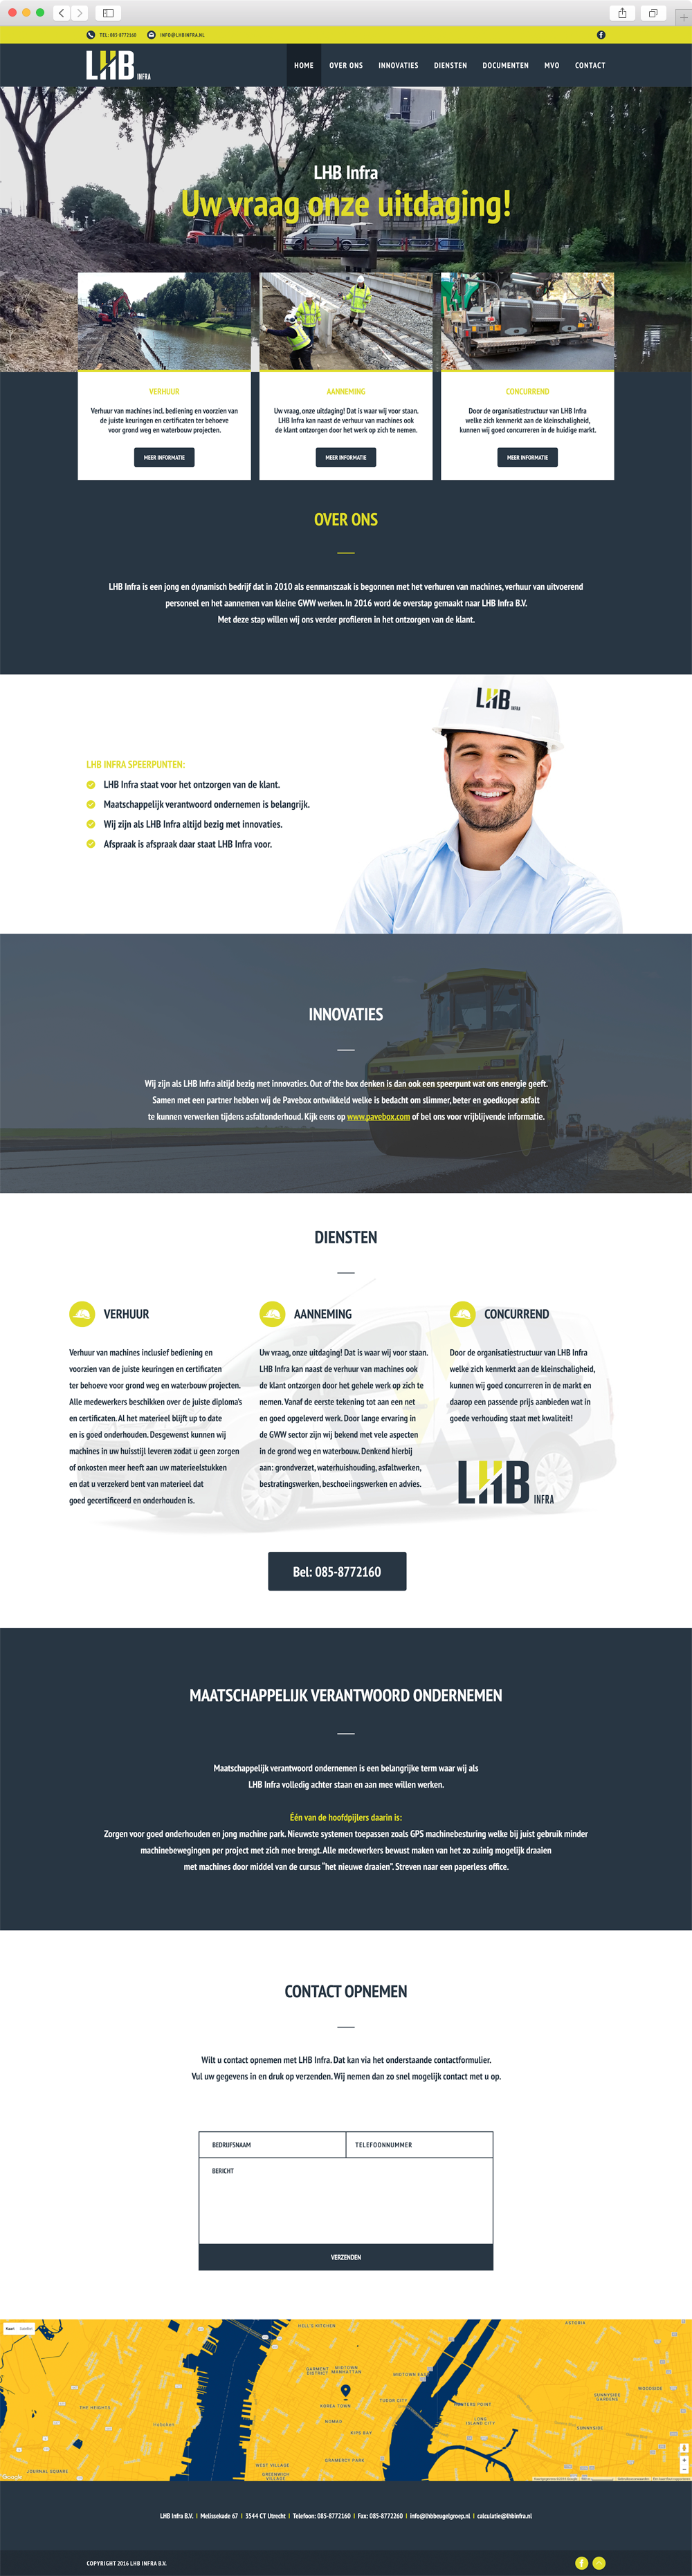 LHB_Infra_Page_01_Green_Creatives